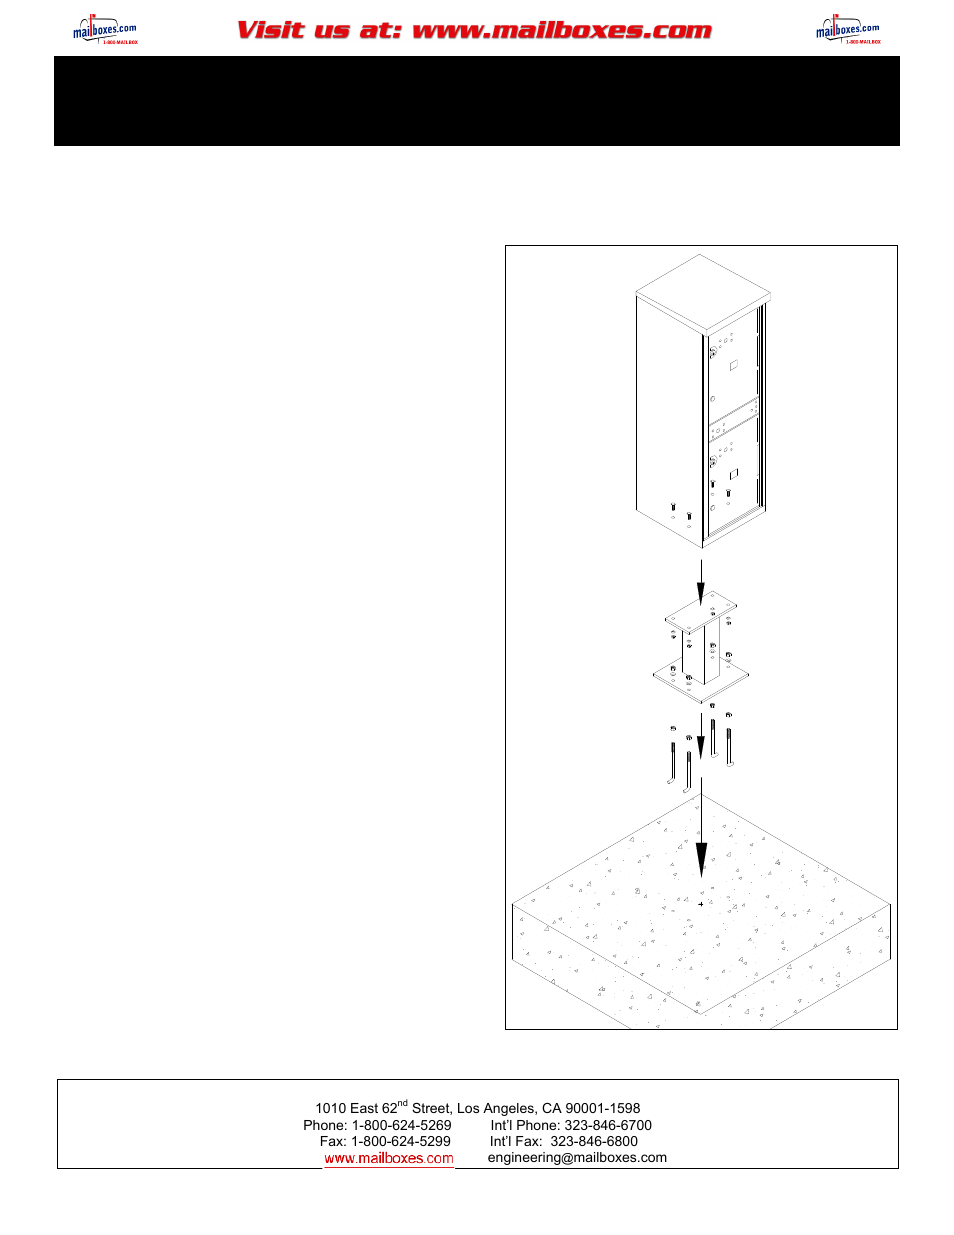 salsbury industries 3302 outdoor parcel locker user manual 2 pages